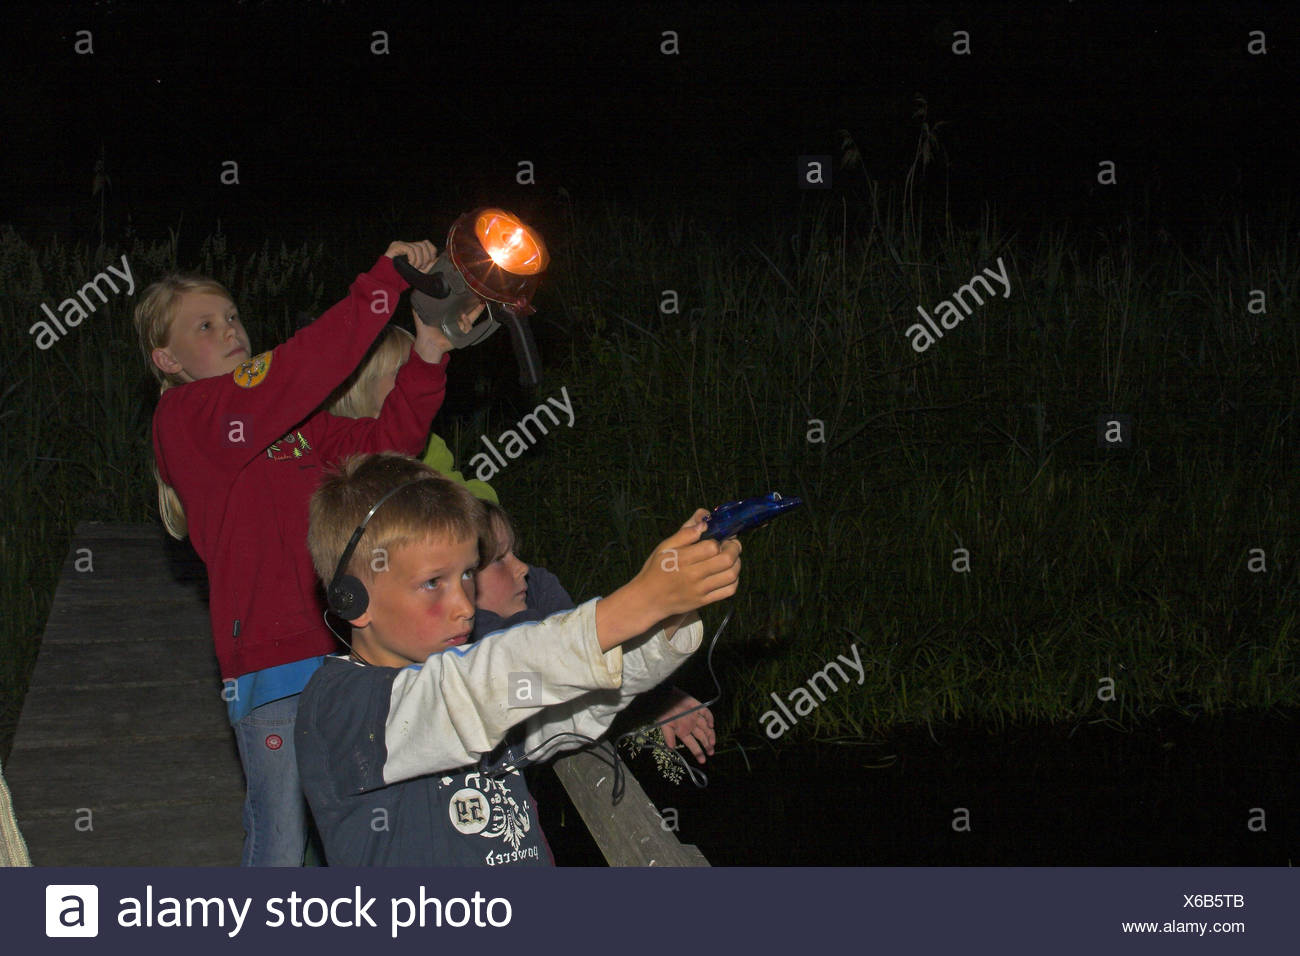 children on a bat-excursion at night, with pocket lamp and bat-detector - Stock Image